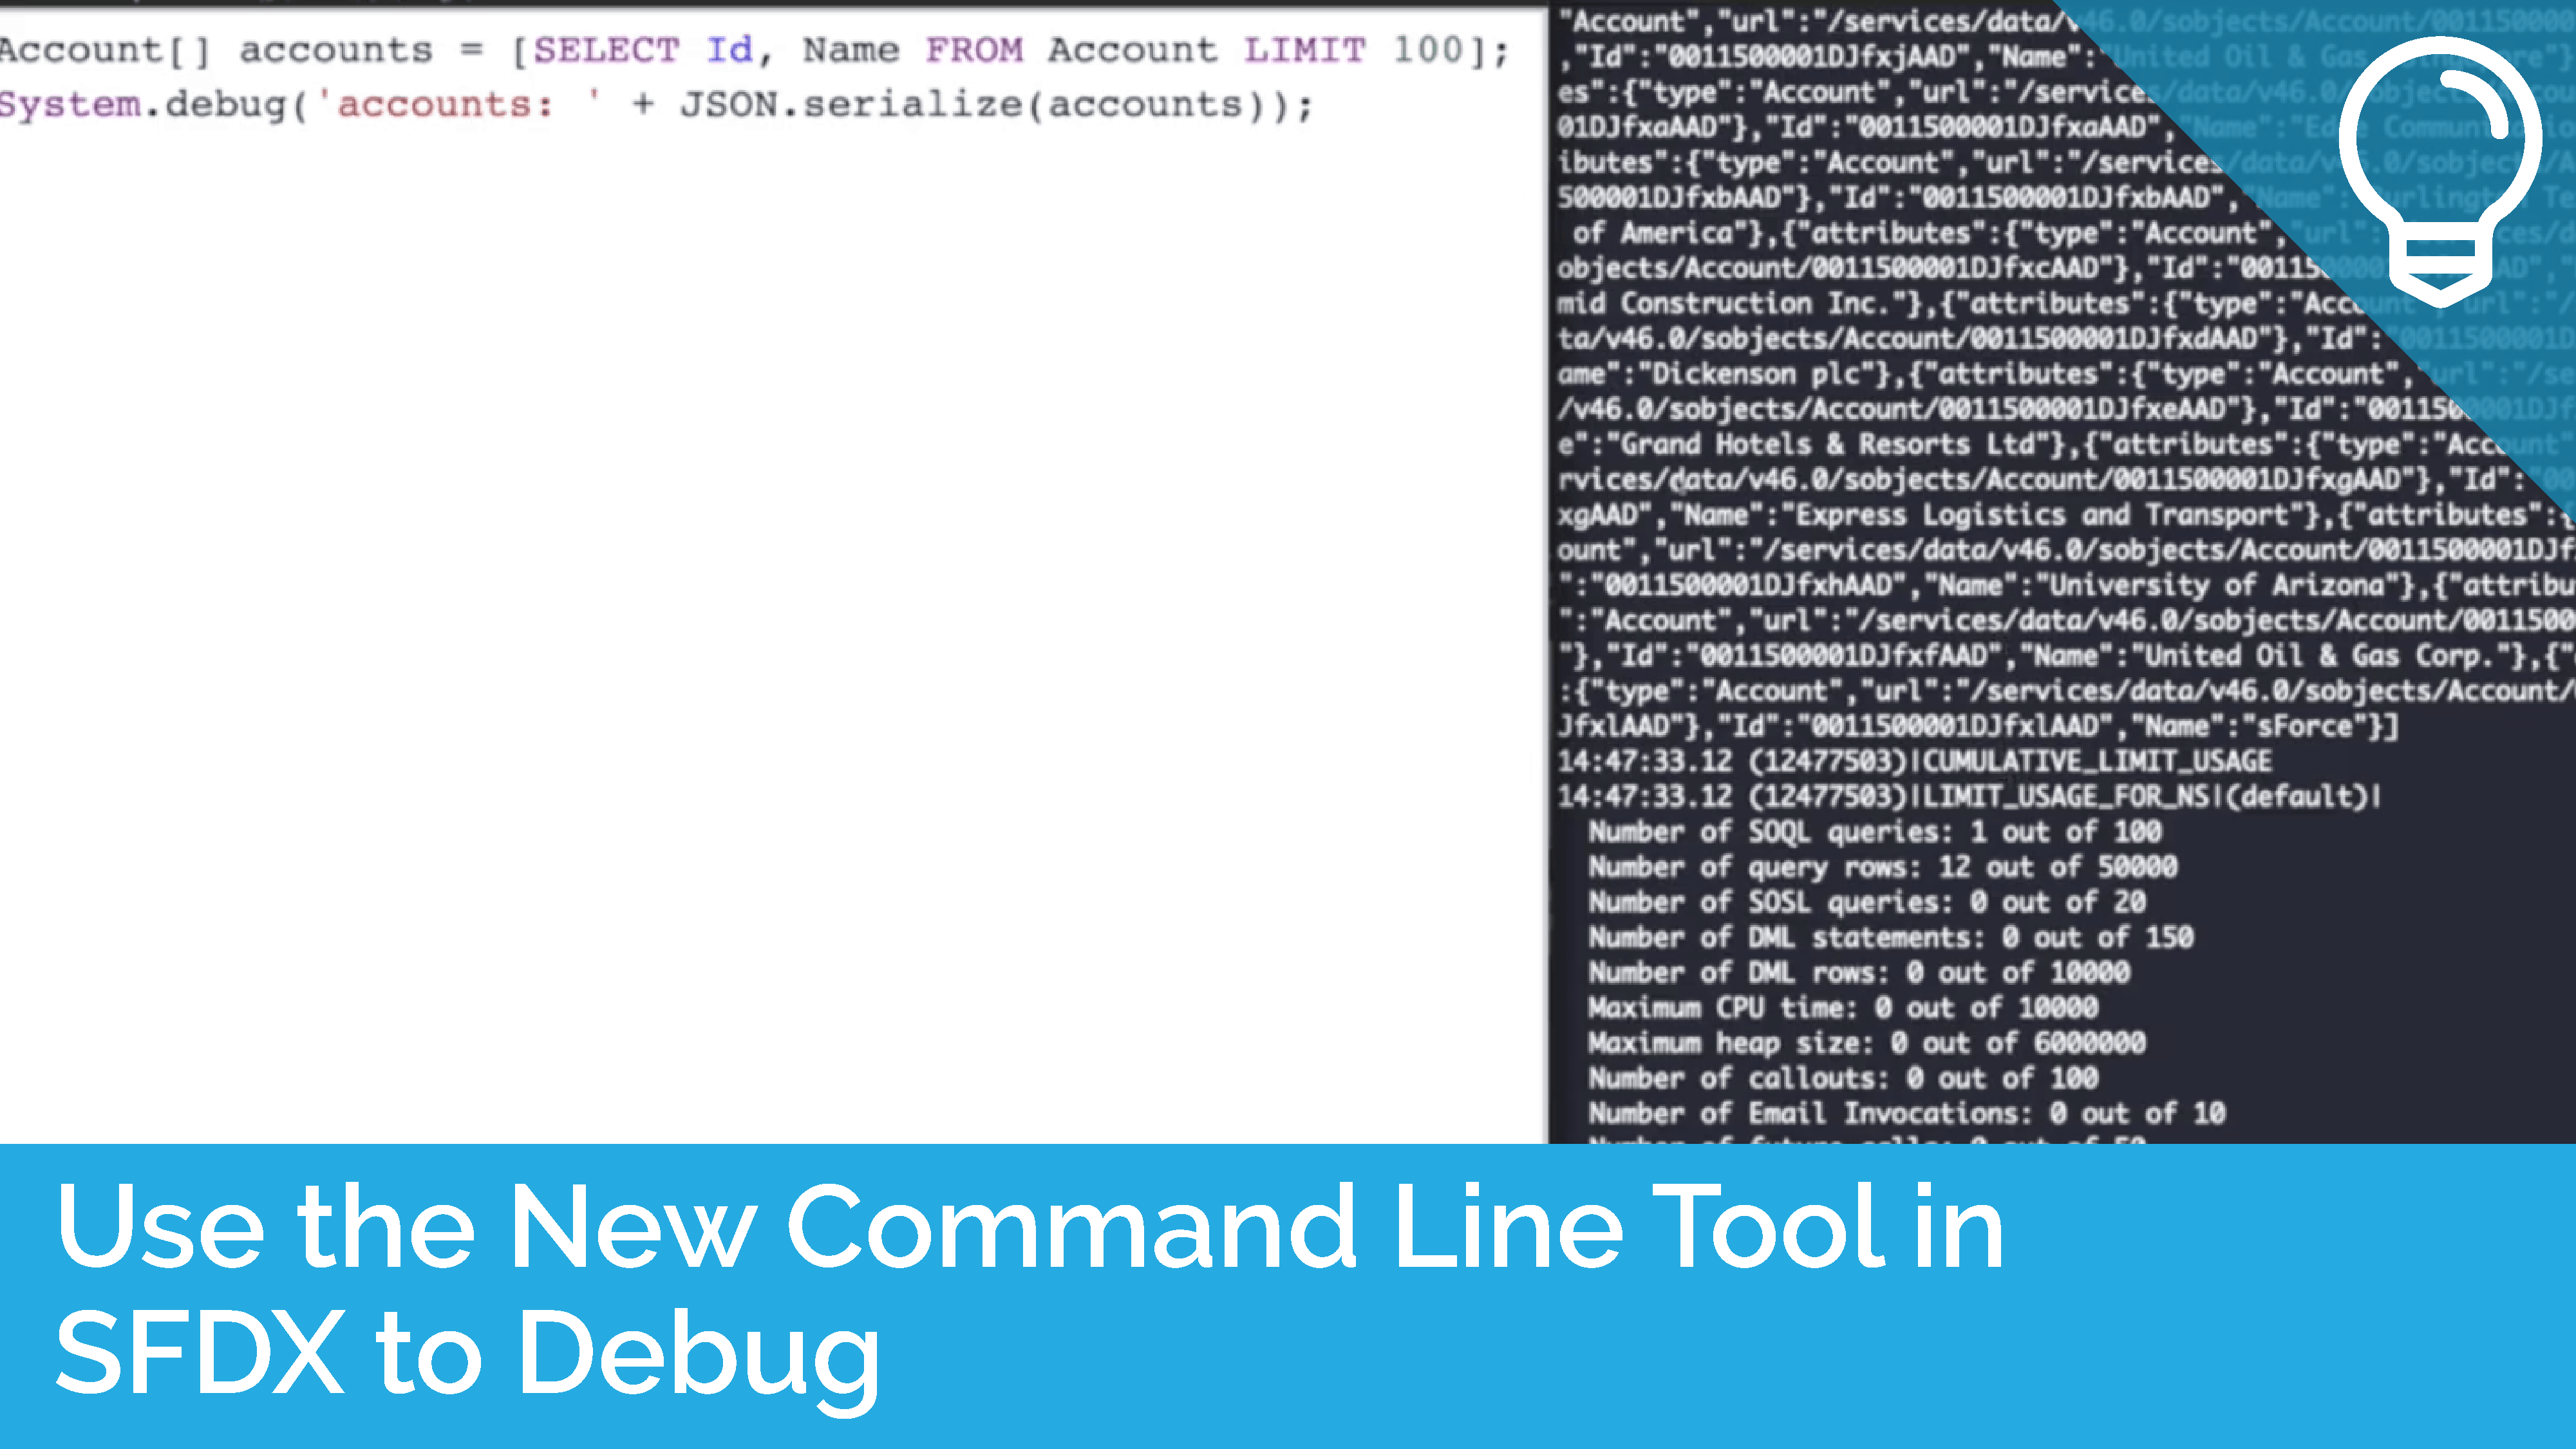 Use the New Command Line Tool in SFDX to Debug